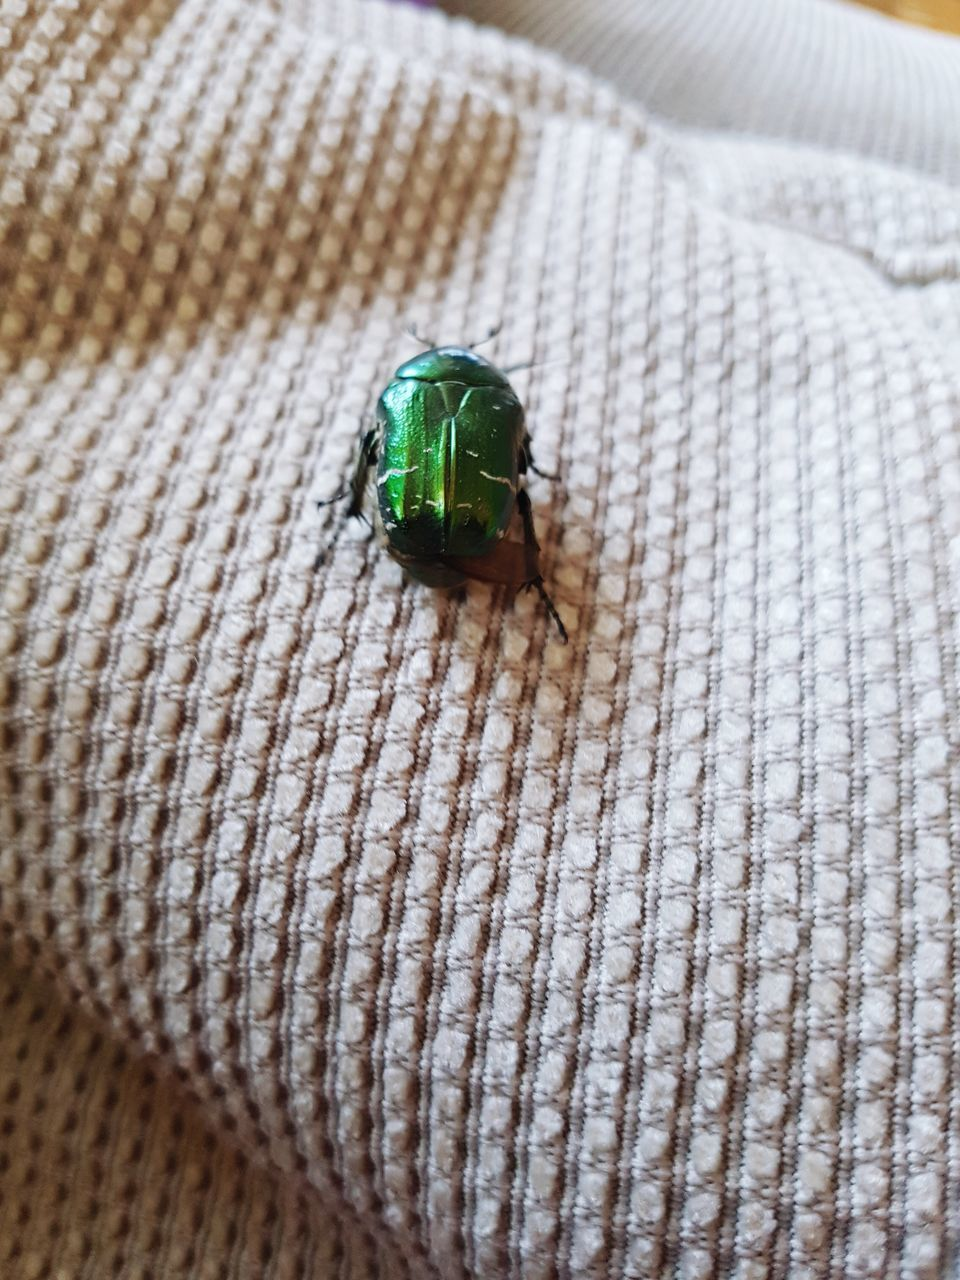 indoors, no people, high angle view, insect, green color, animal themes, animals in the wild, one animal, close-up, day